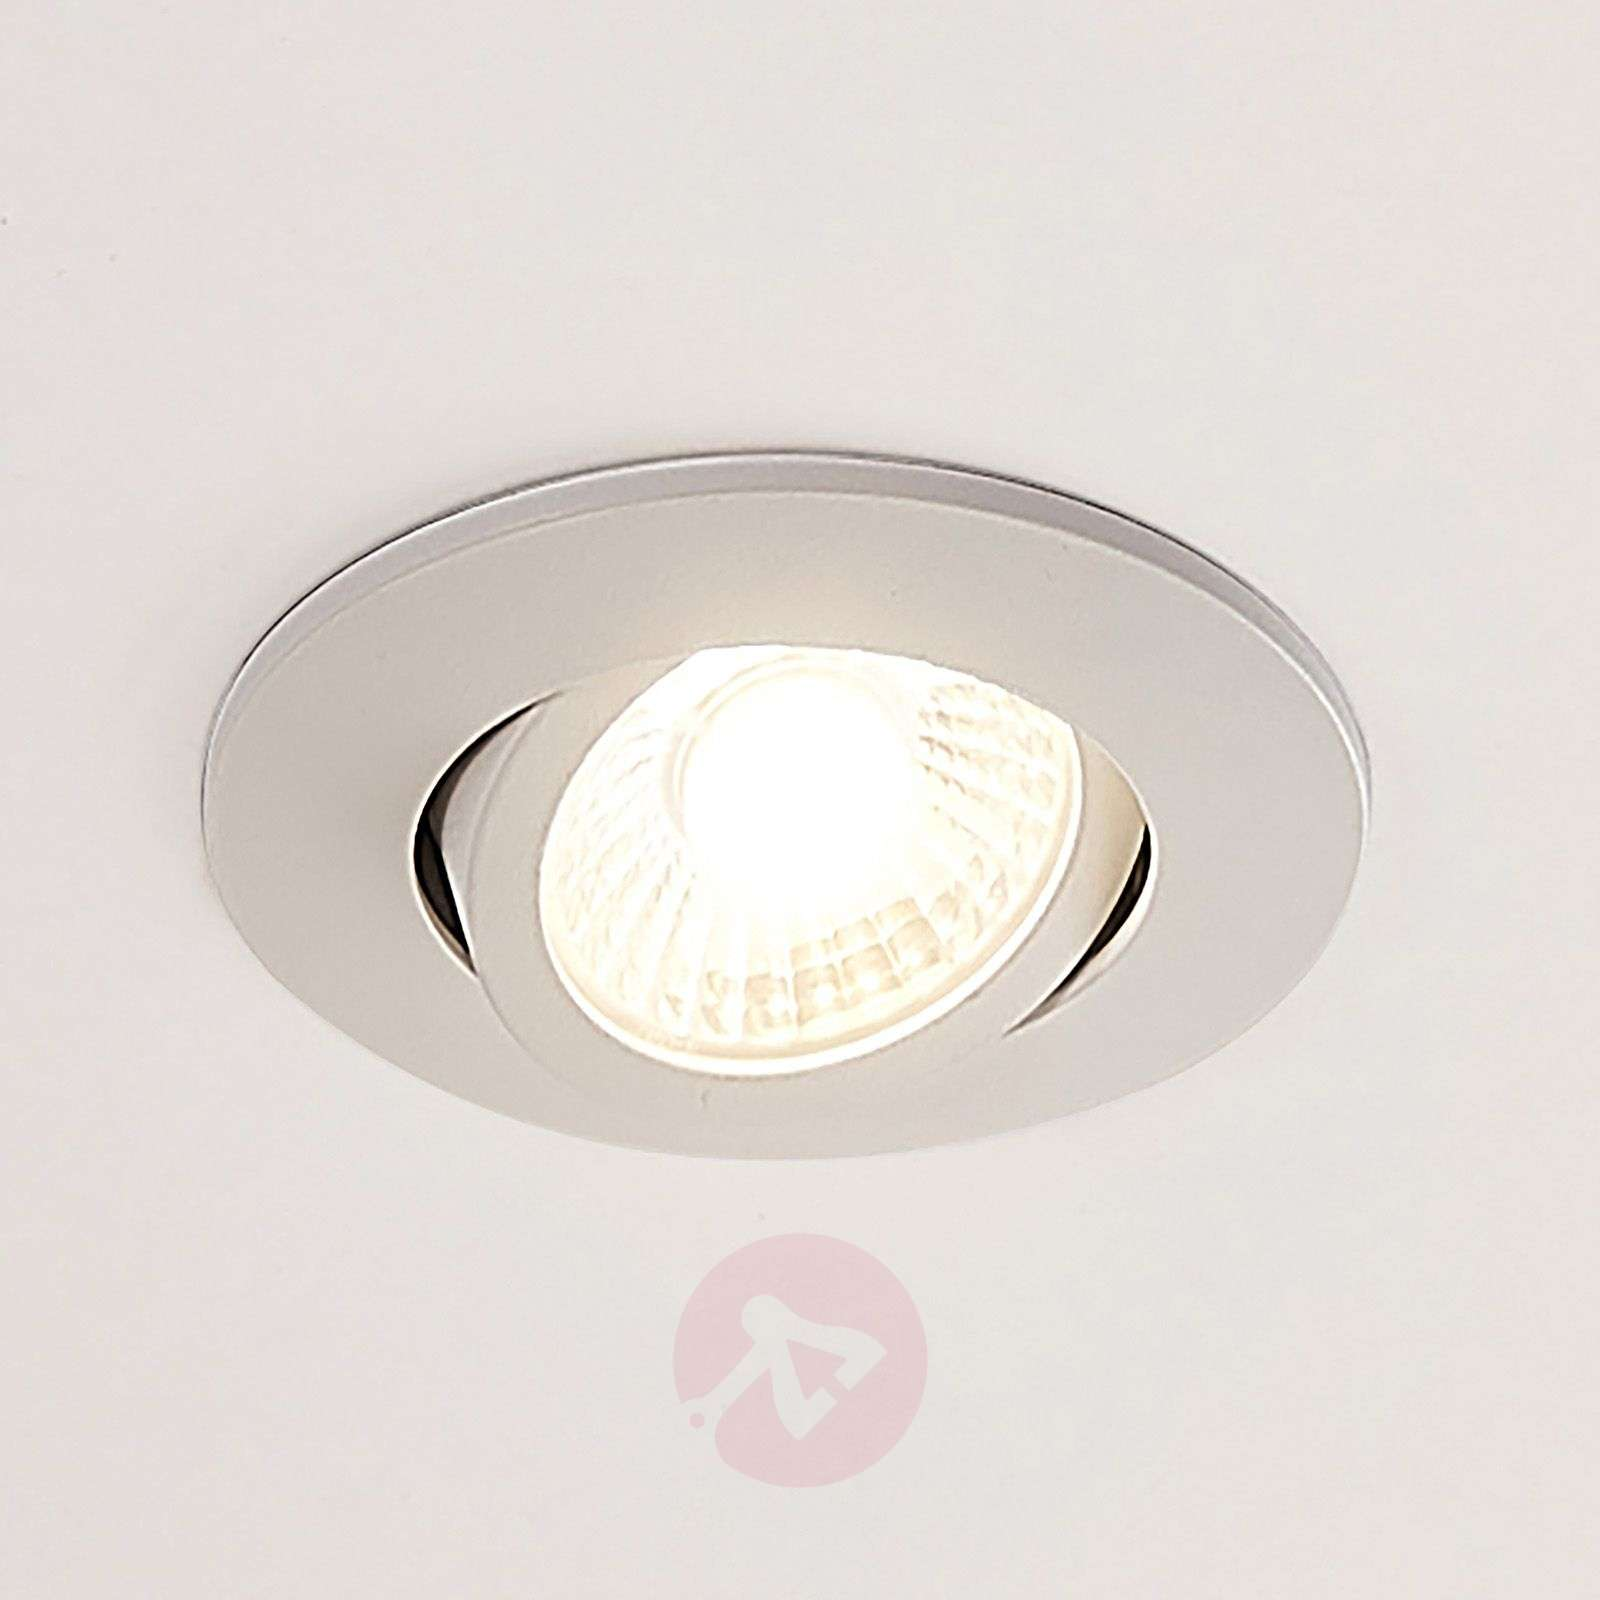 Arcchio Ricals downlight LED, atenuable-9967058-02